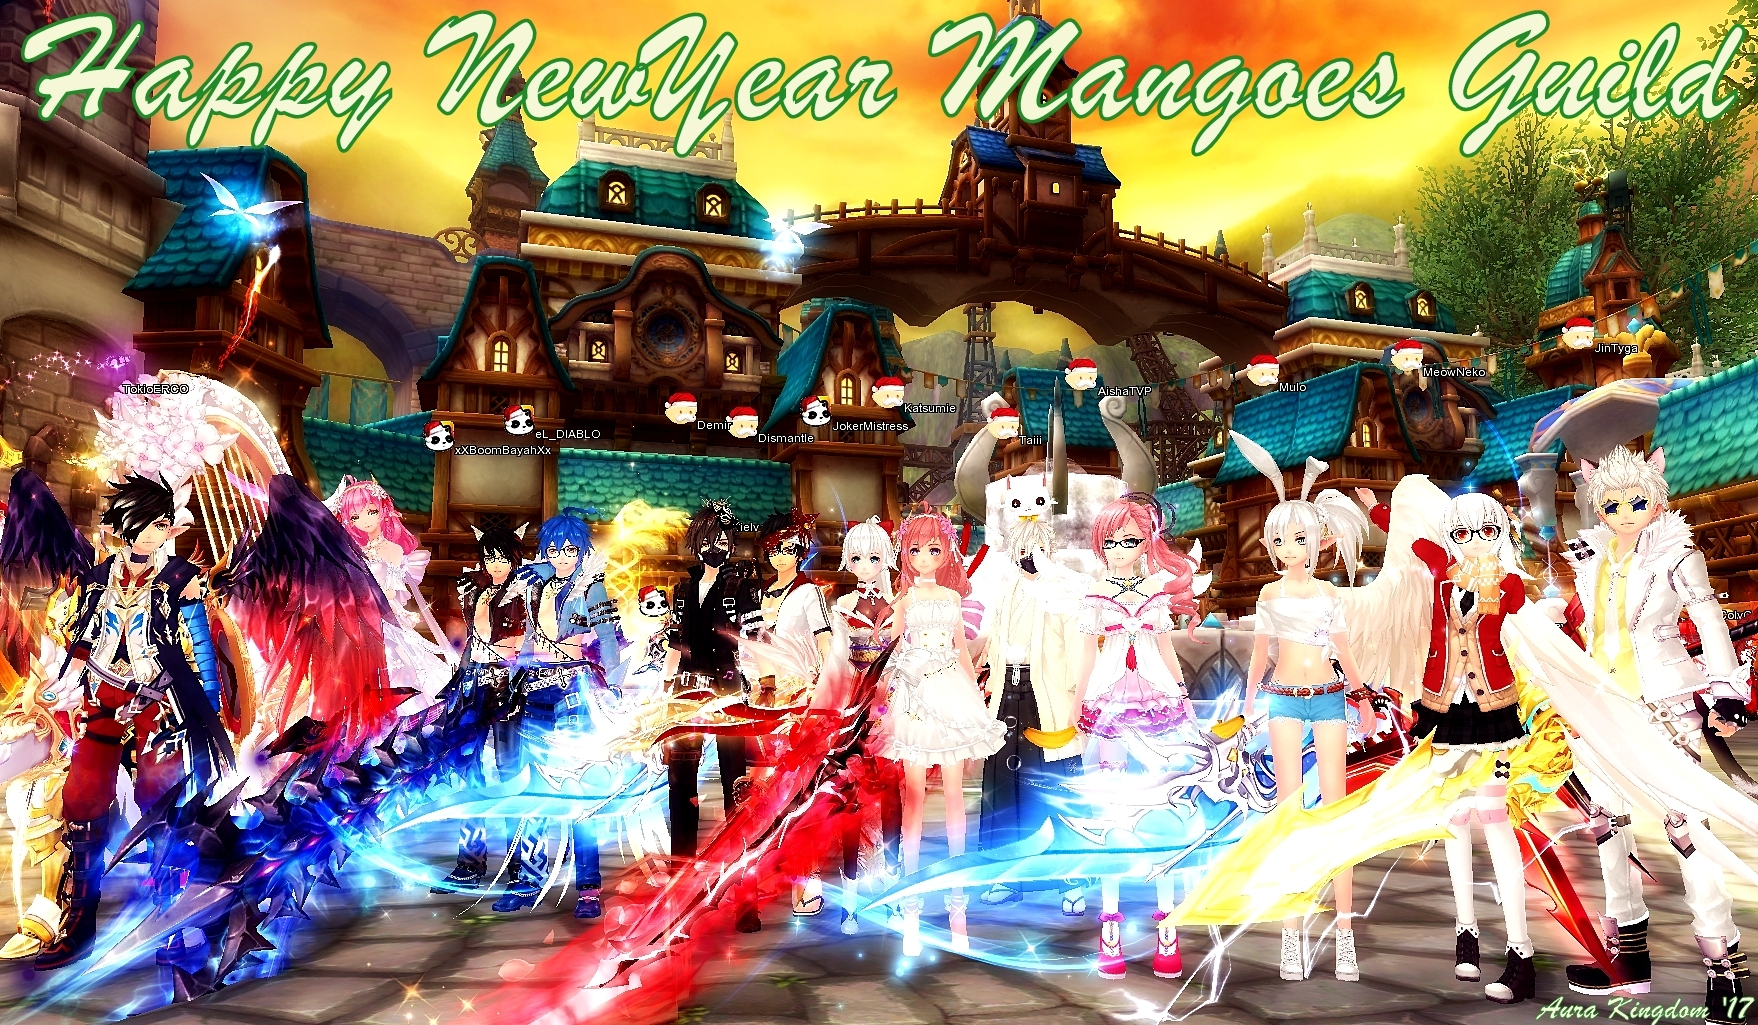 Mangoes_Guild_Group_Pic.jpg